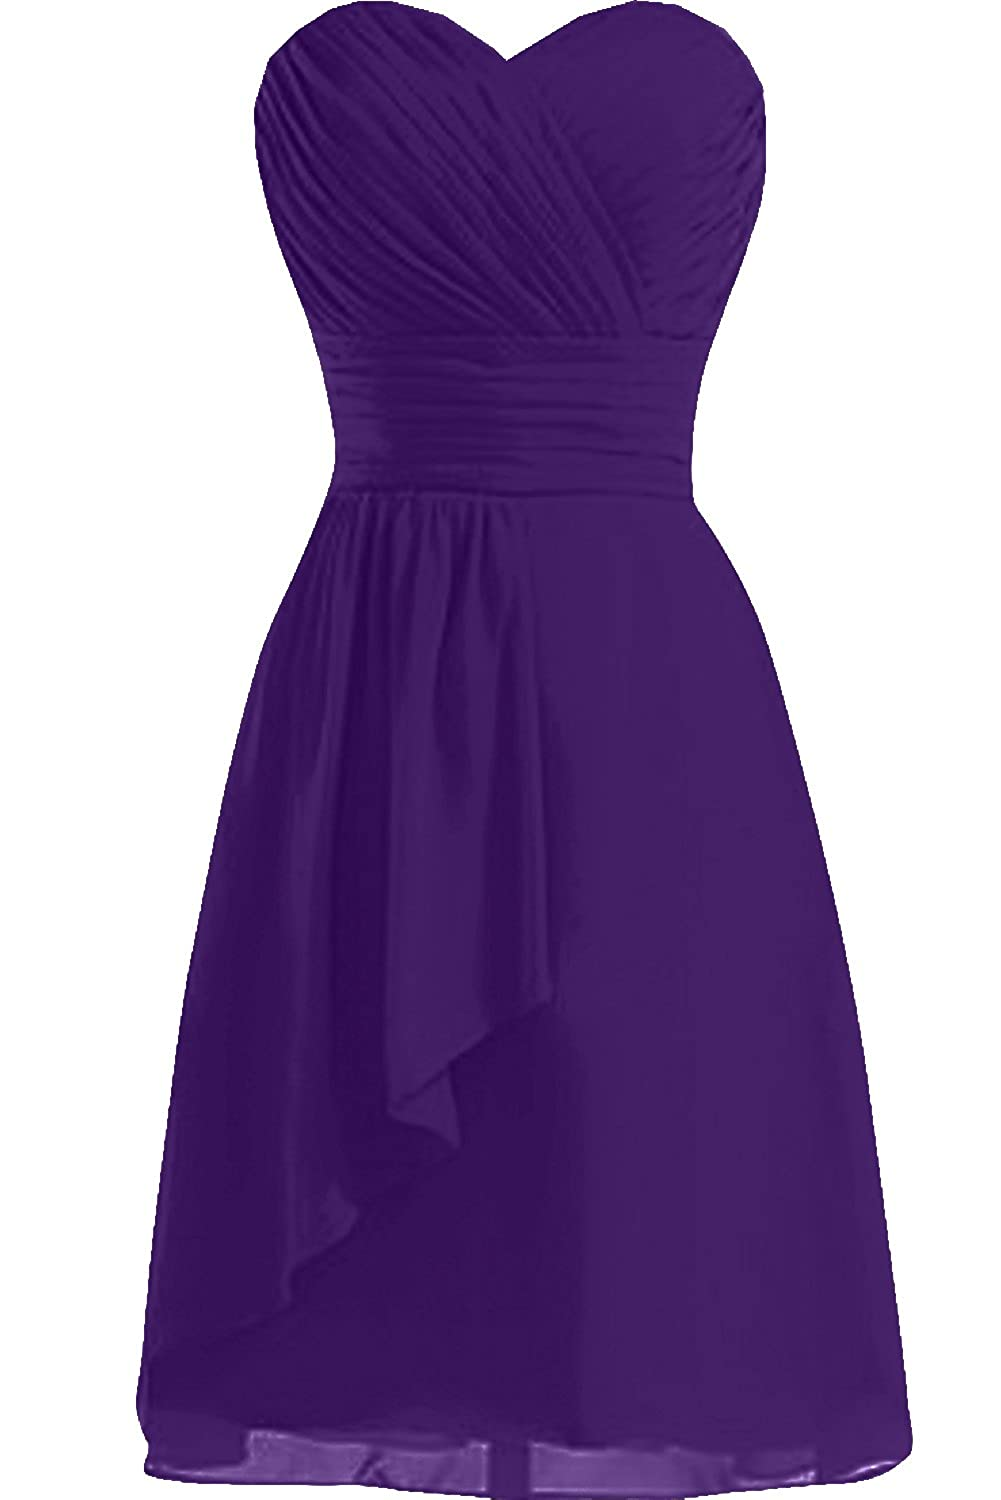 Sunvary Simple Cocktail Homecoming Gowns Short Bridesmaid Dress Chiffon